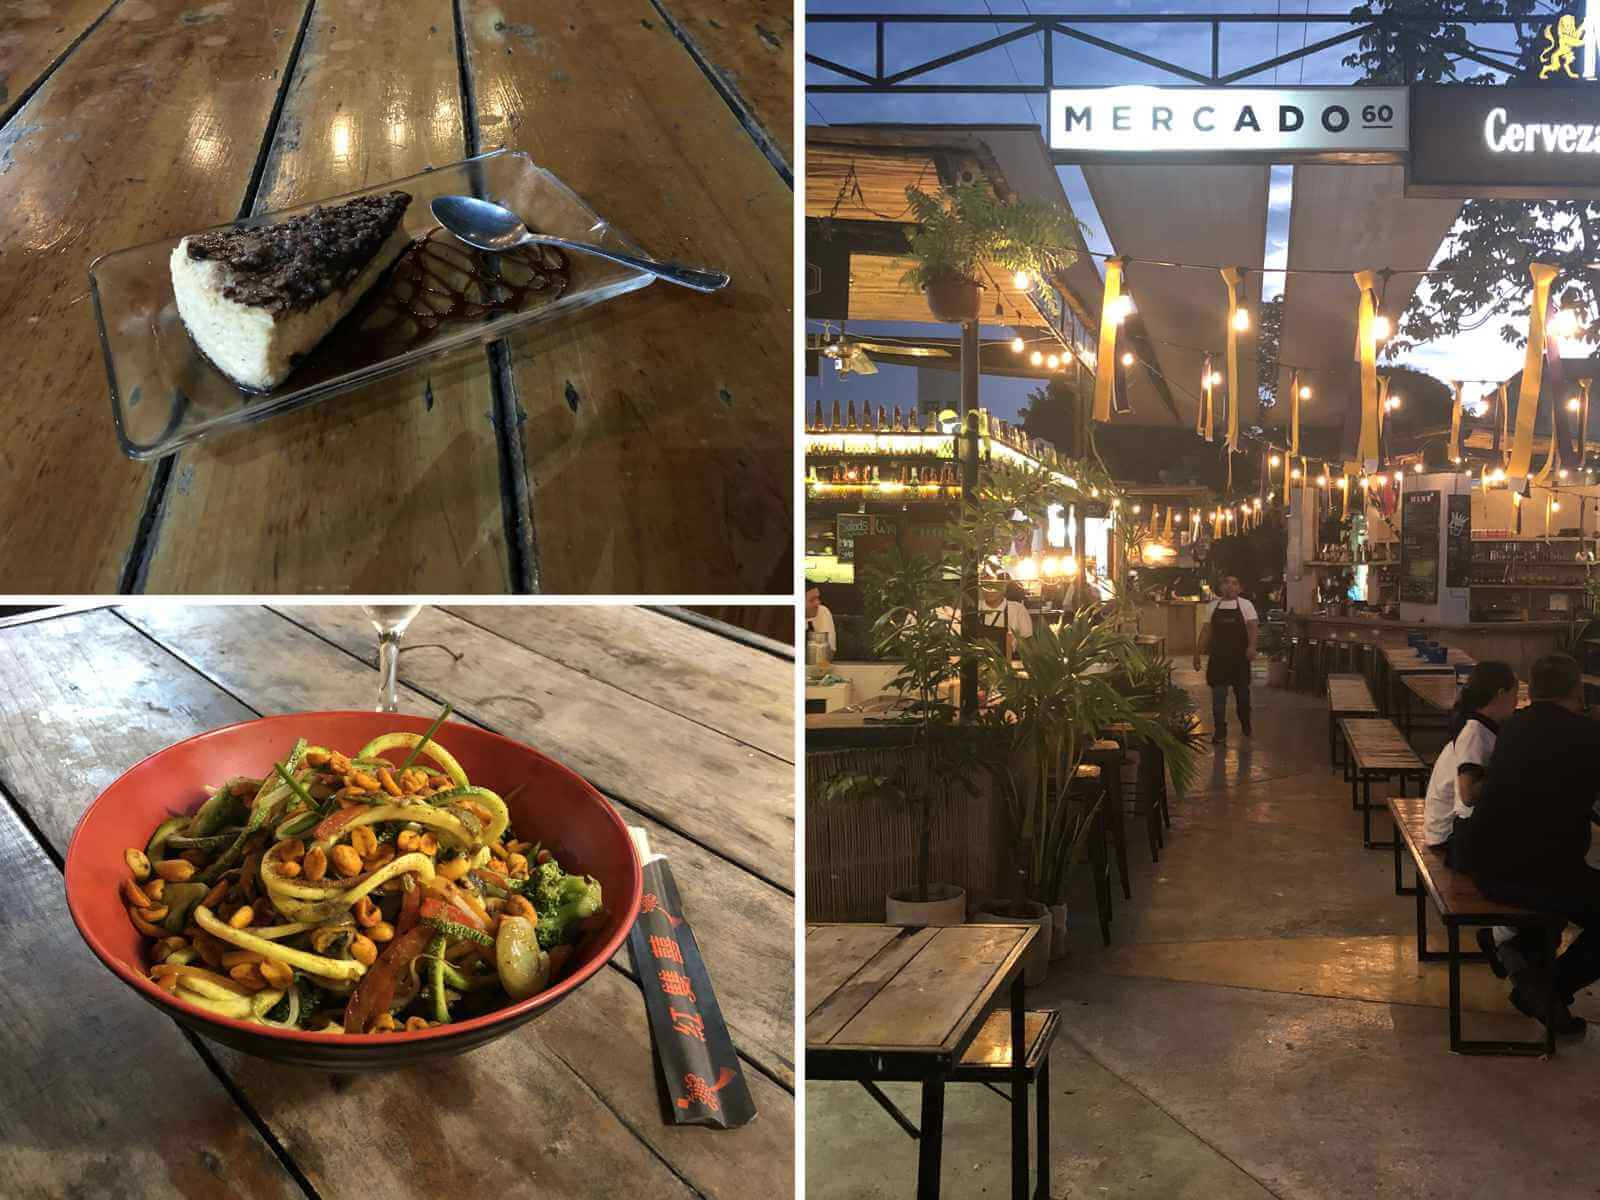 Foodhal Mérida - Mercado 60